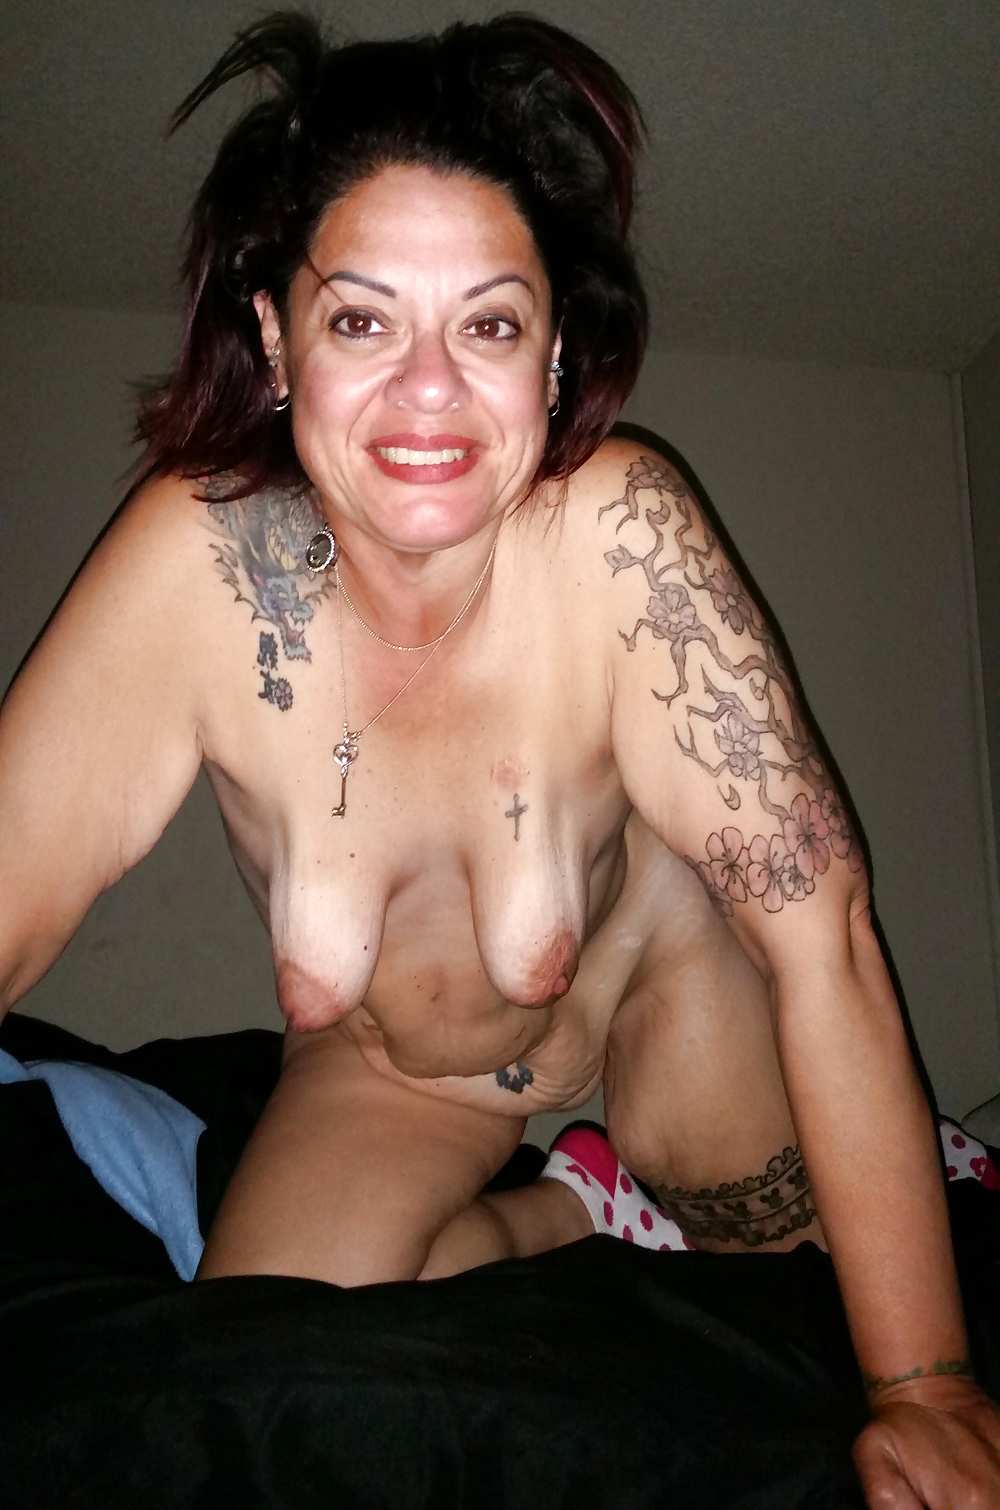 Sex galleries of tattoed women nude